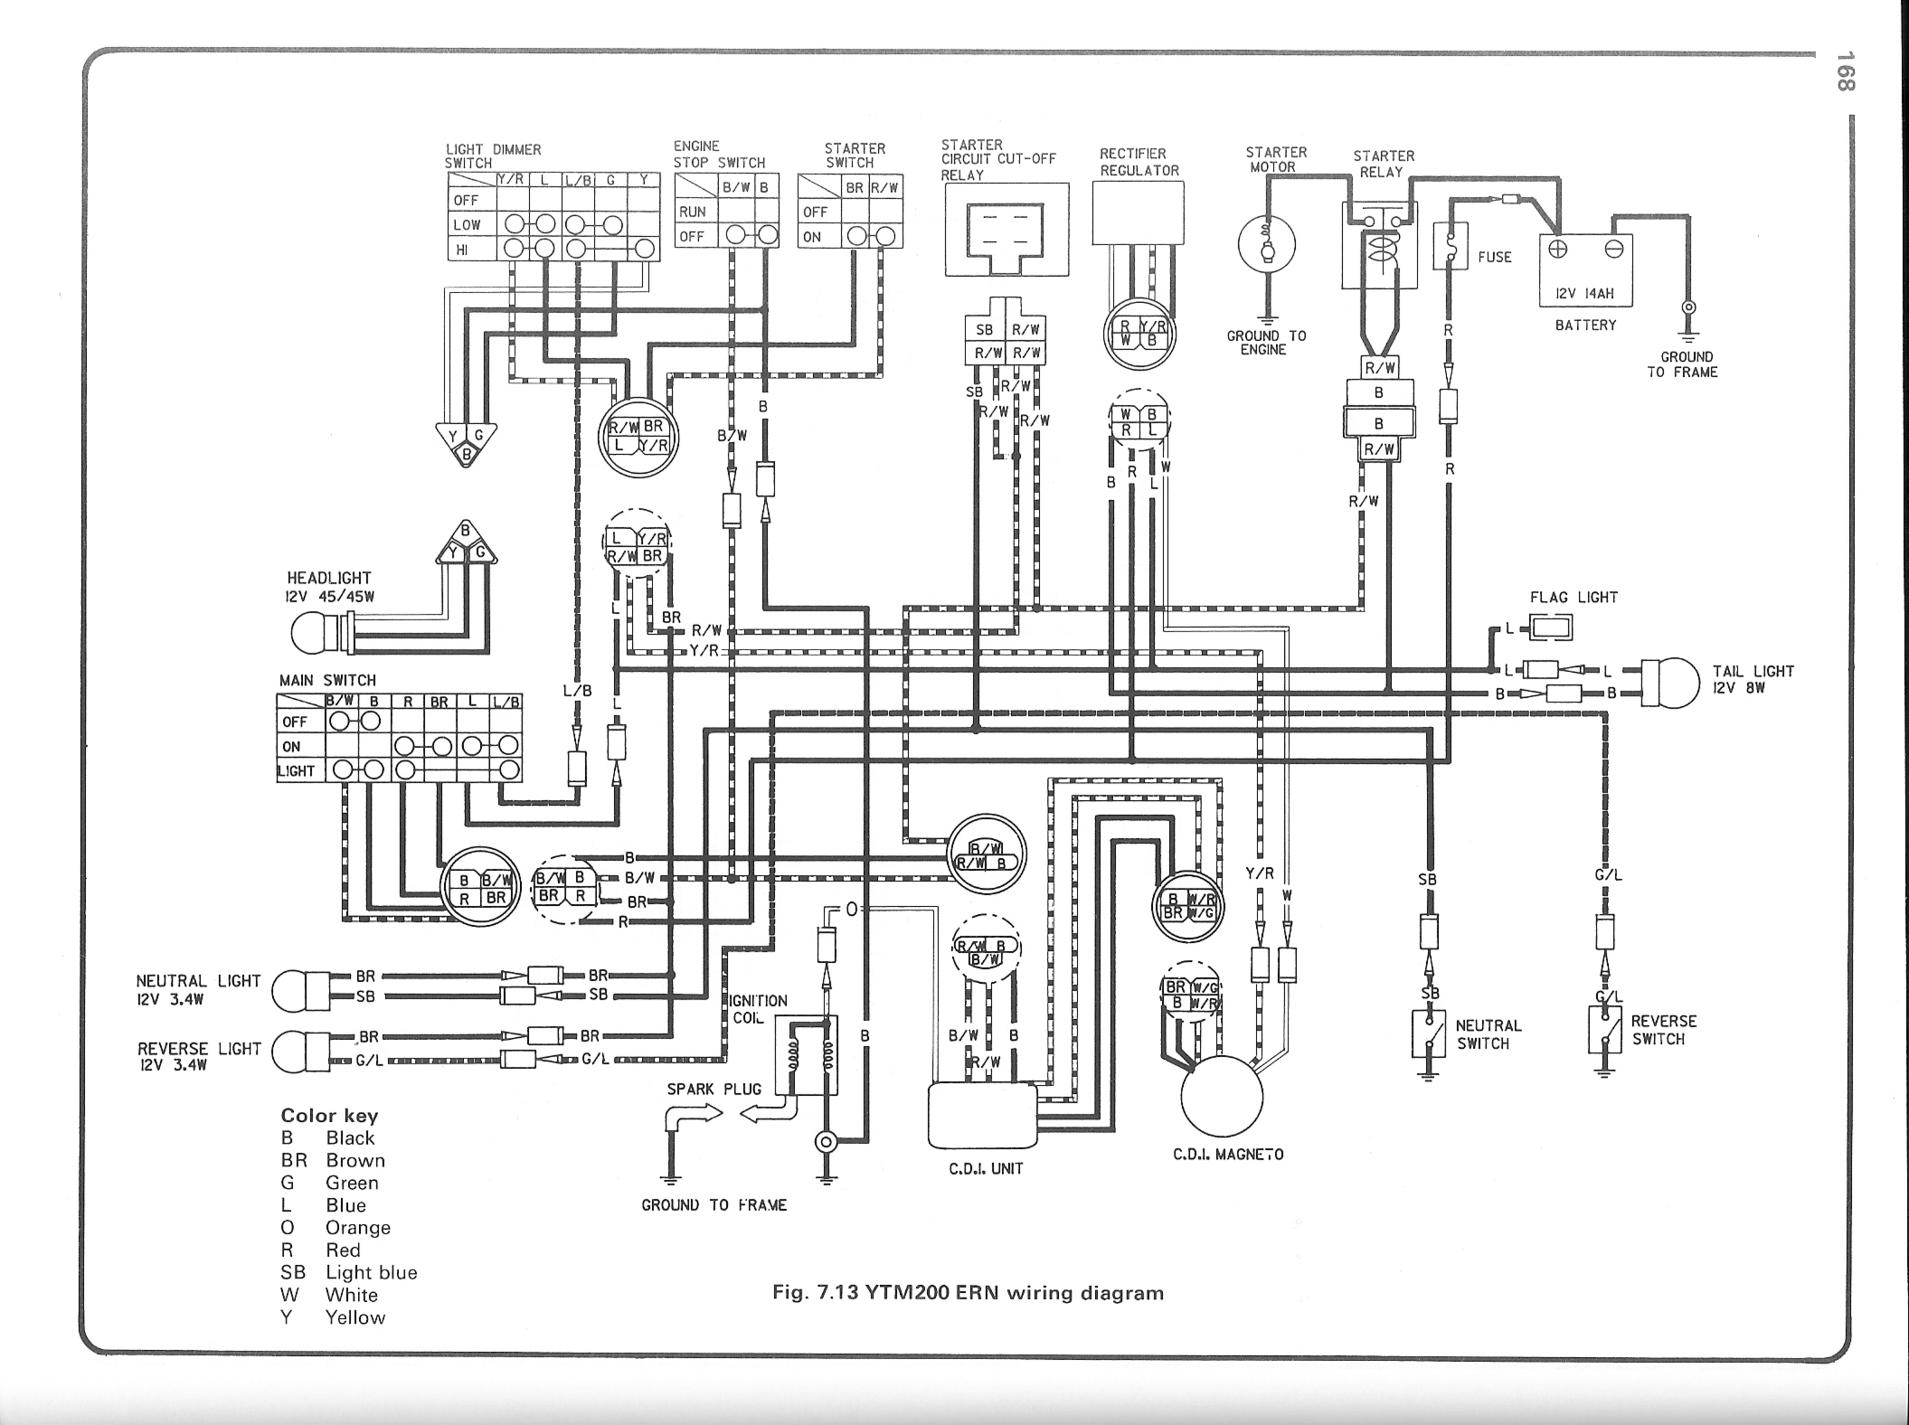 188 Yamaha Wiring Diagram Section on yamaha moto 4 wiring diagram